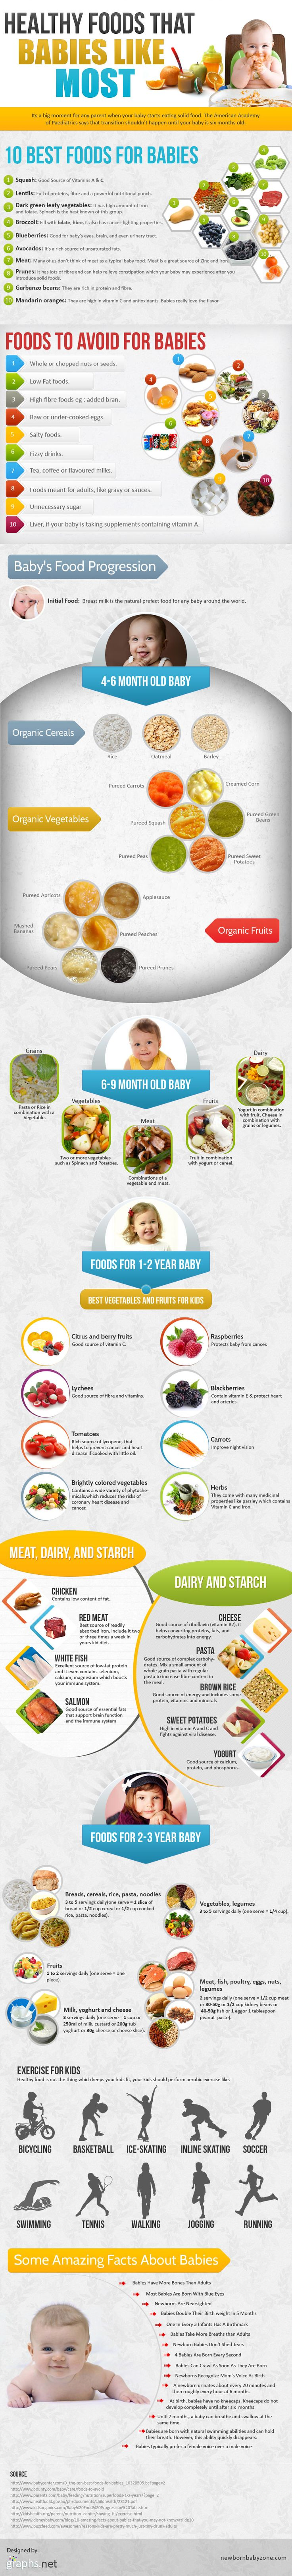 Foods for baby + Timeline of when to start introducing